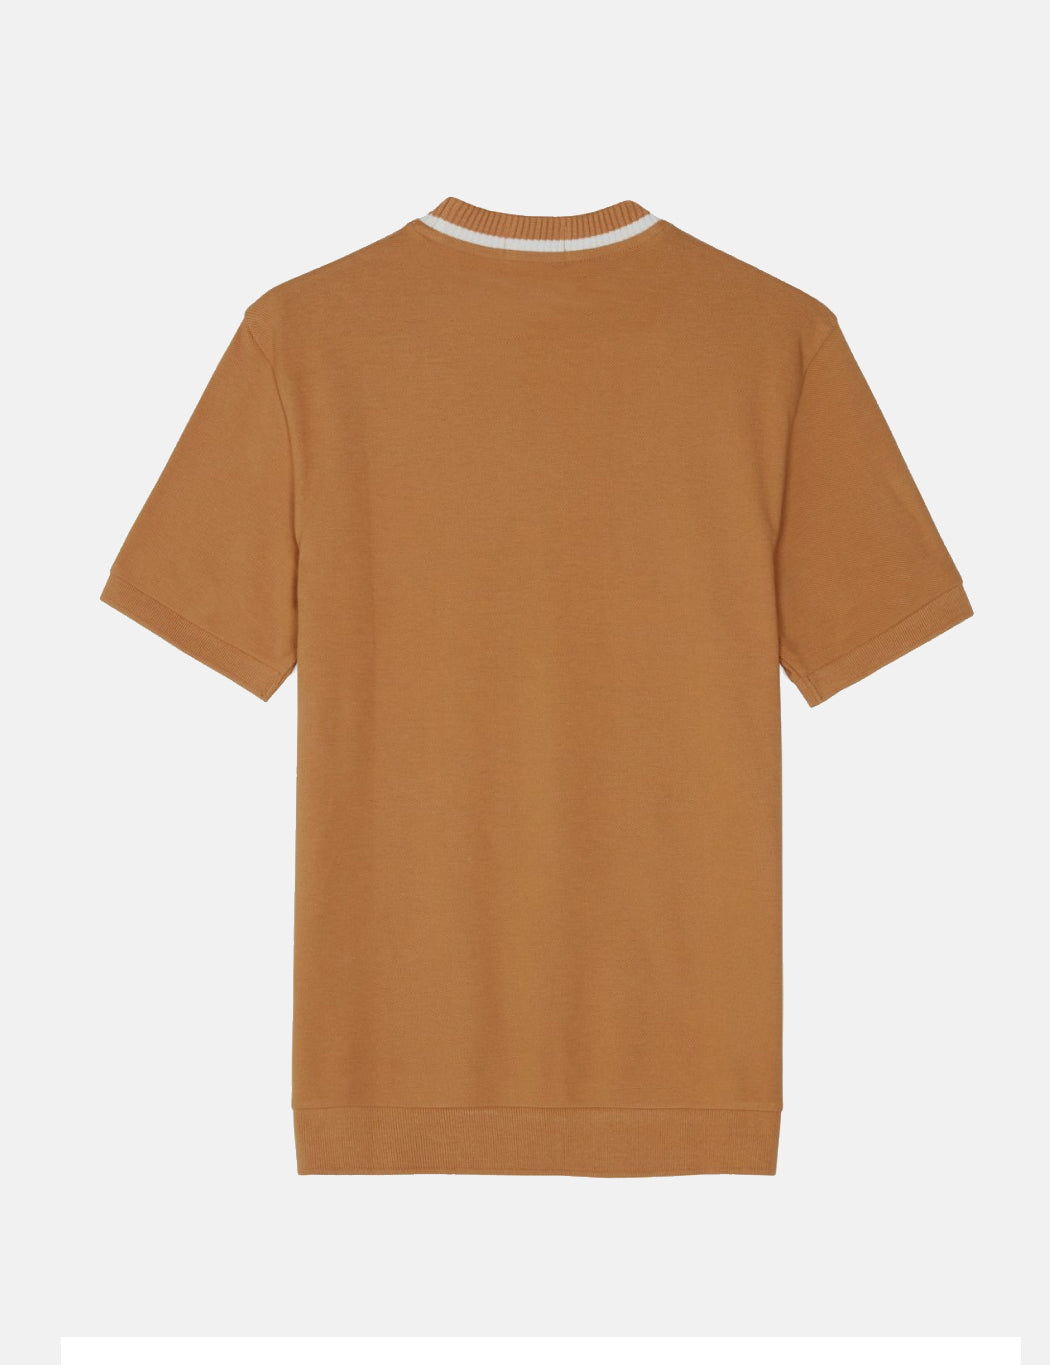 Fred Perry Re-issues Crew Neck Pique T-Shirt - Caramel Brown